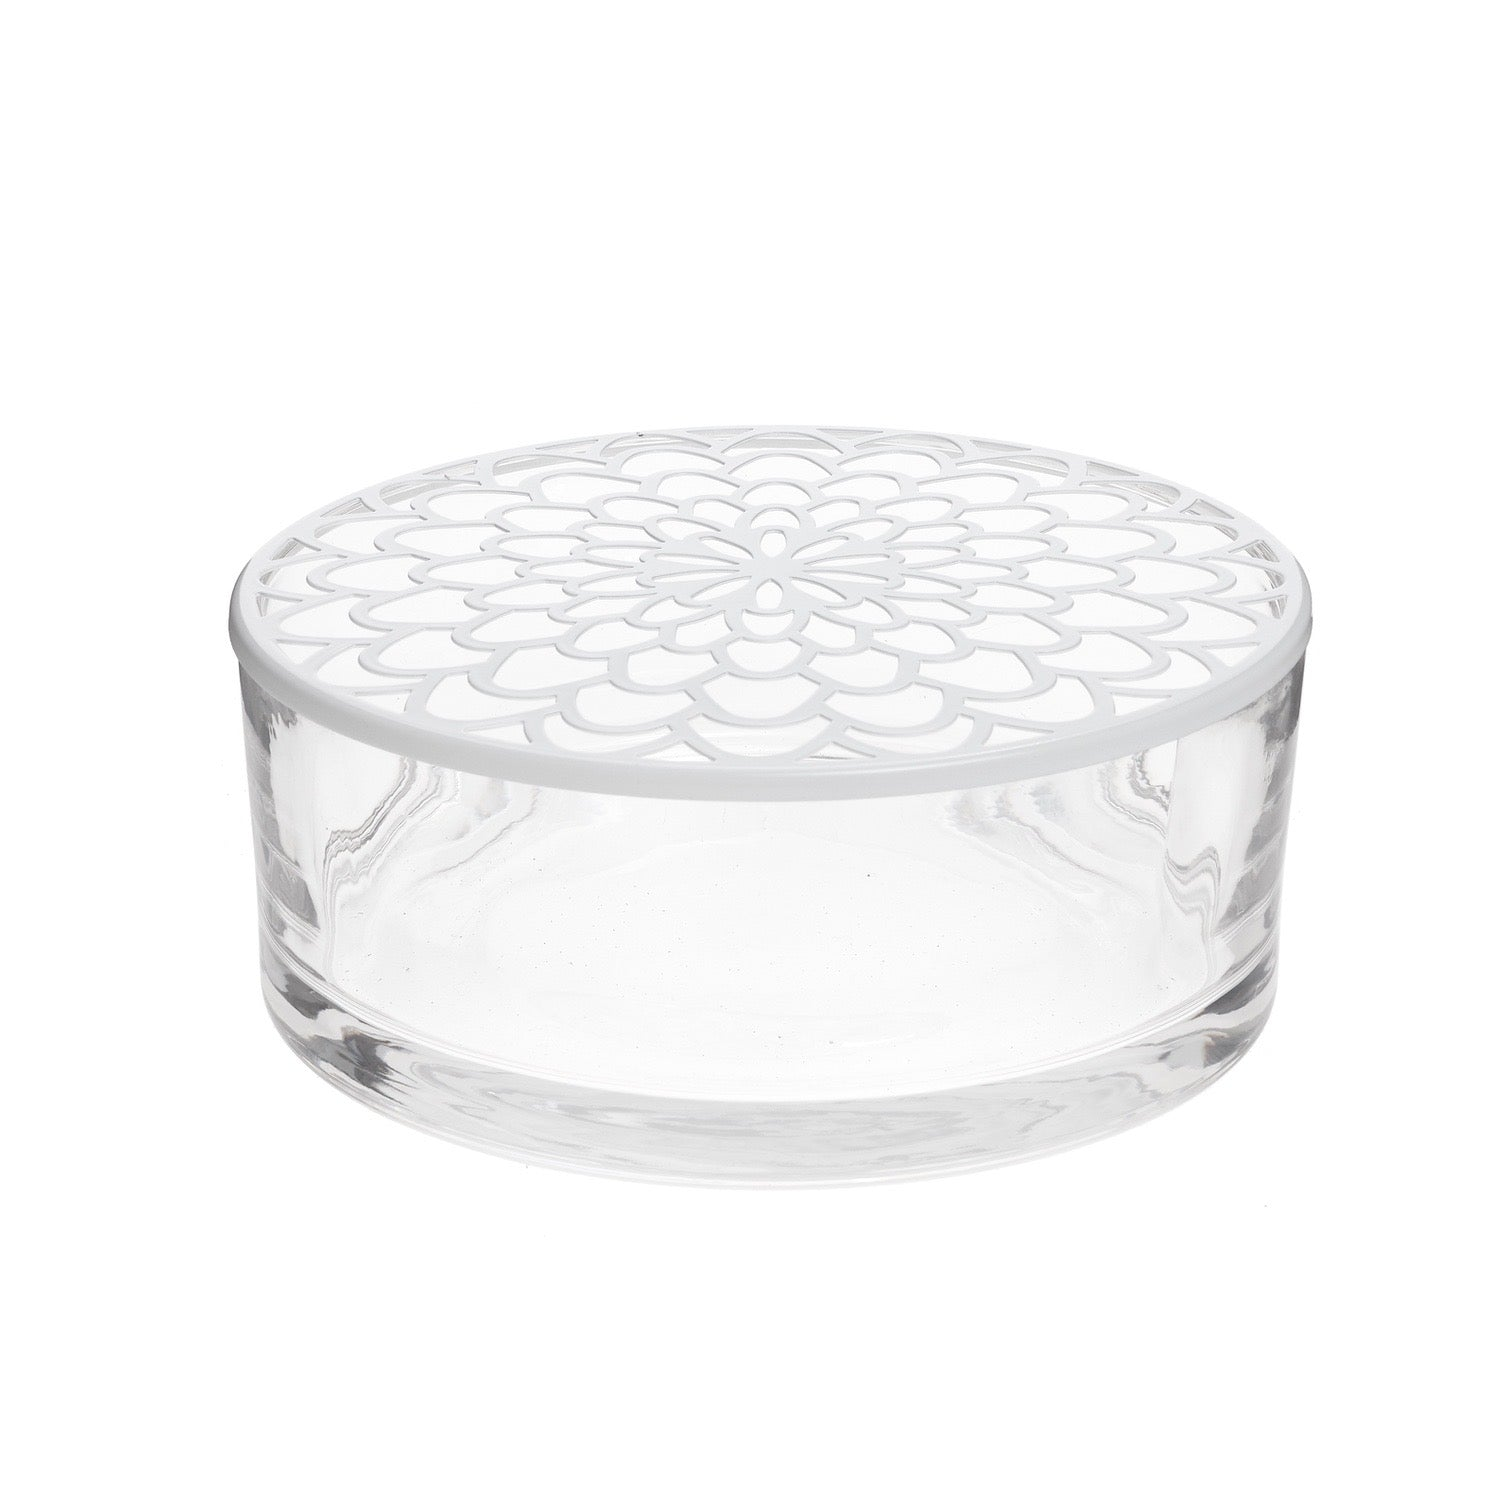 Glass Vase with White Flower Grid Lid | Putti Fine Furnishings